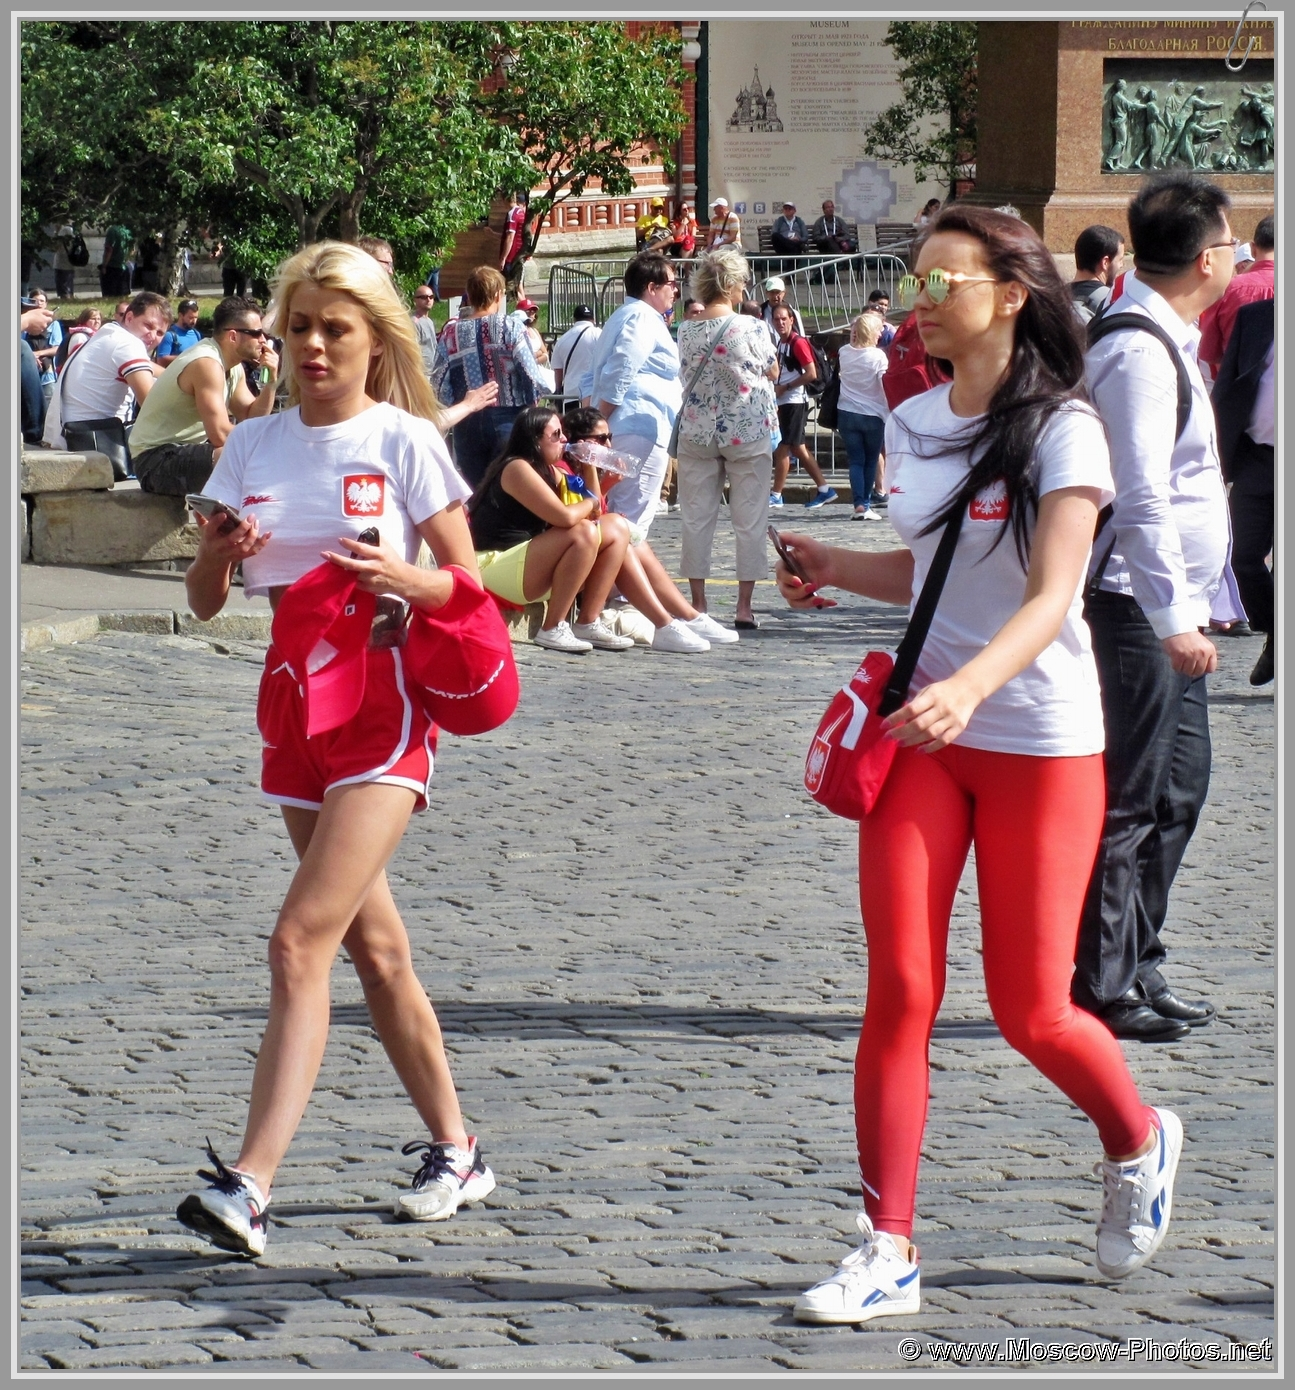 Football girls on Red Square in Moscow during the 2018 FIFA World Cup